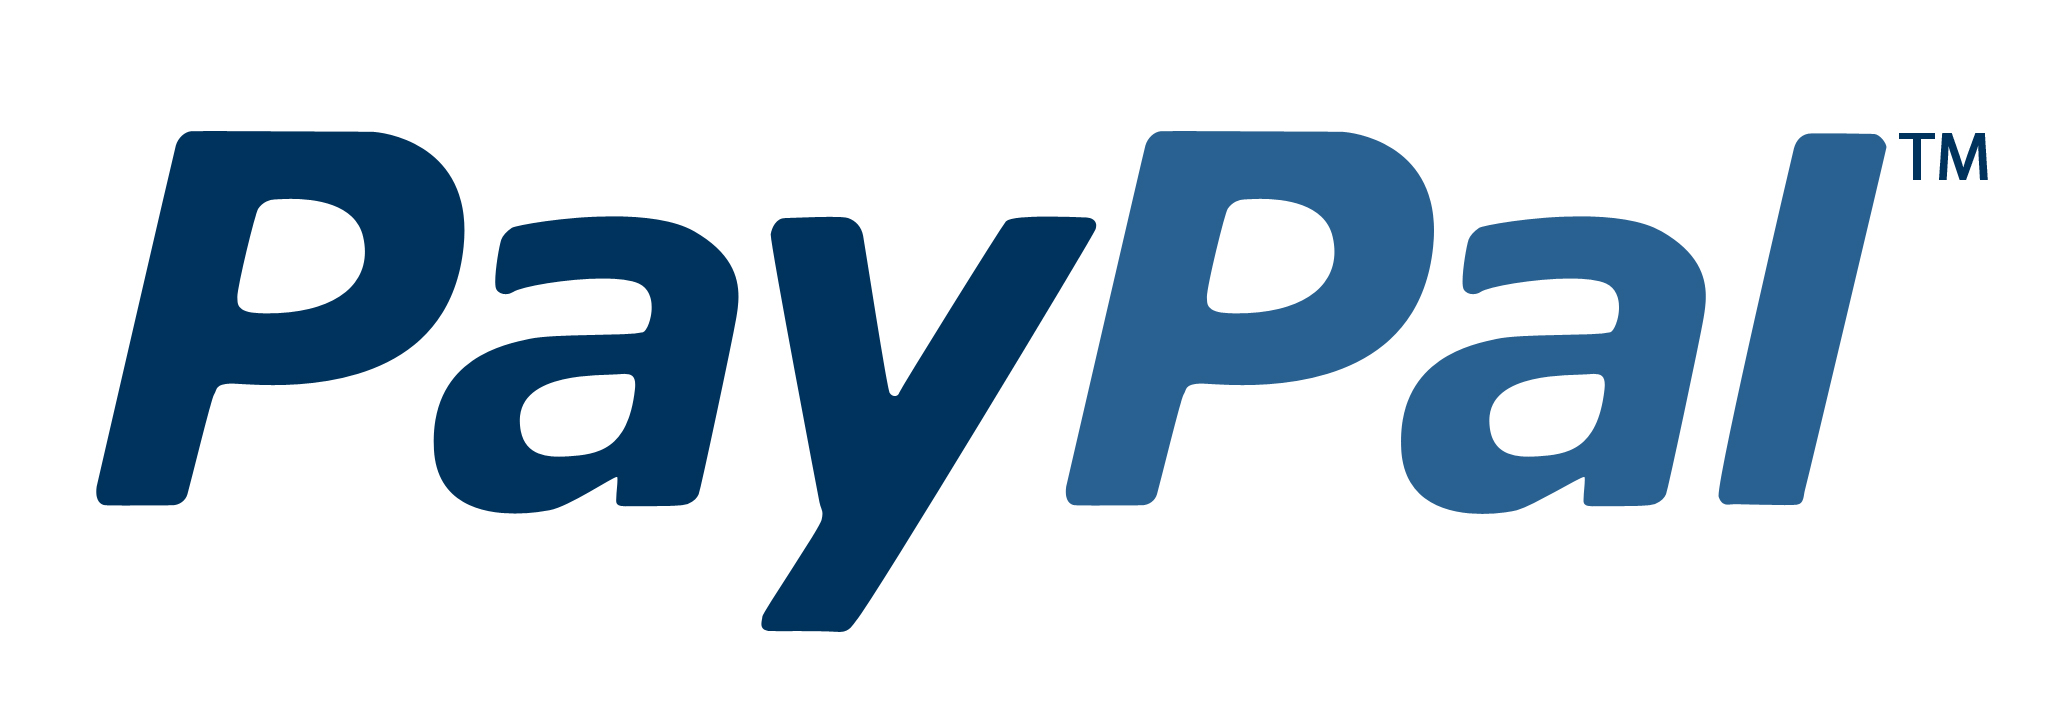 Clarity uses PayPal Payment Processing to boost businesses bottom lines